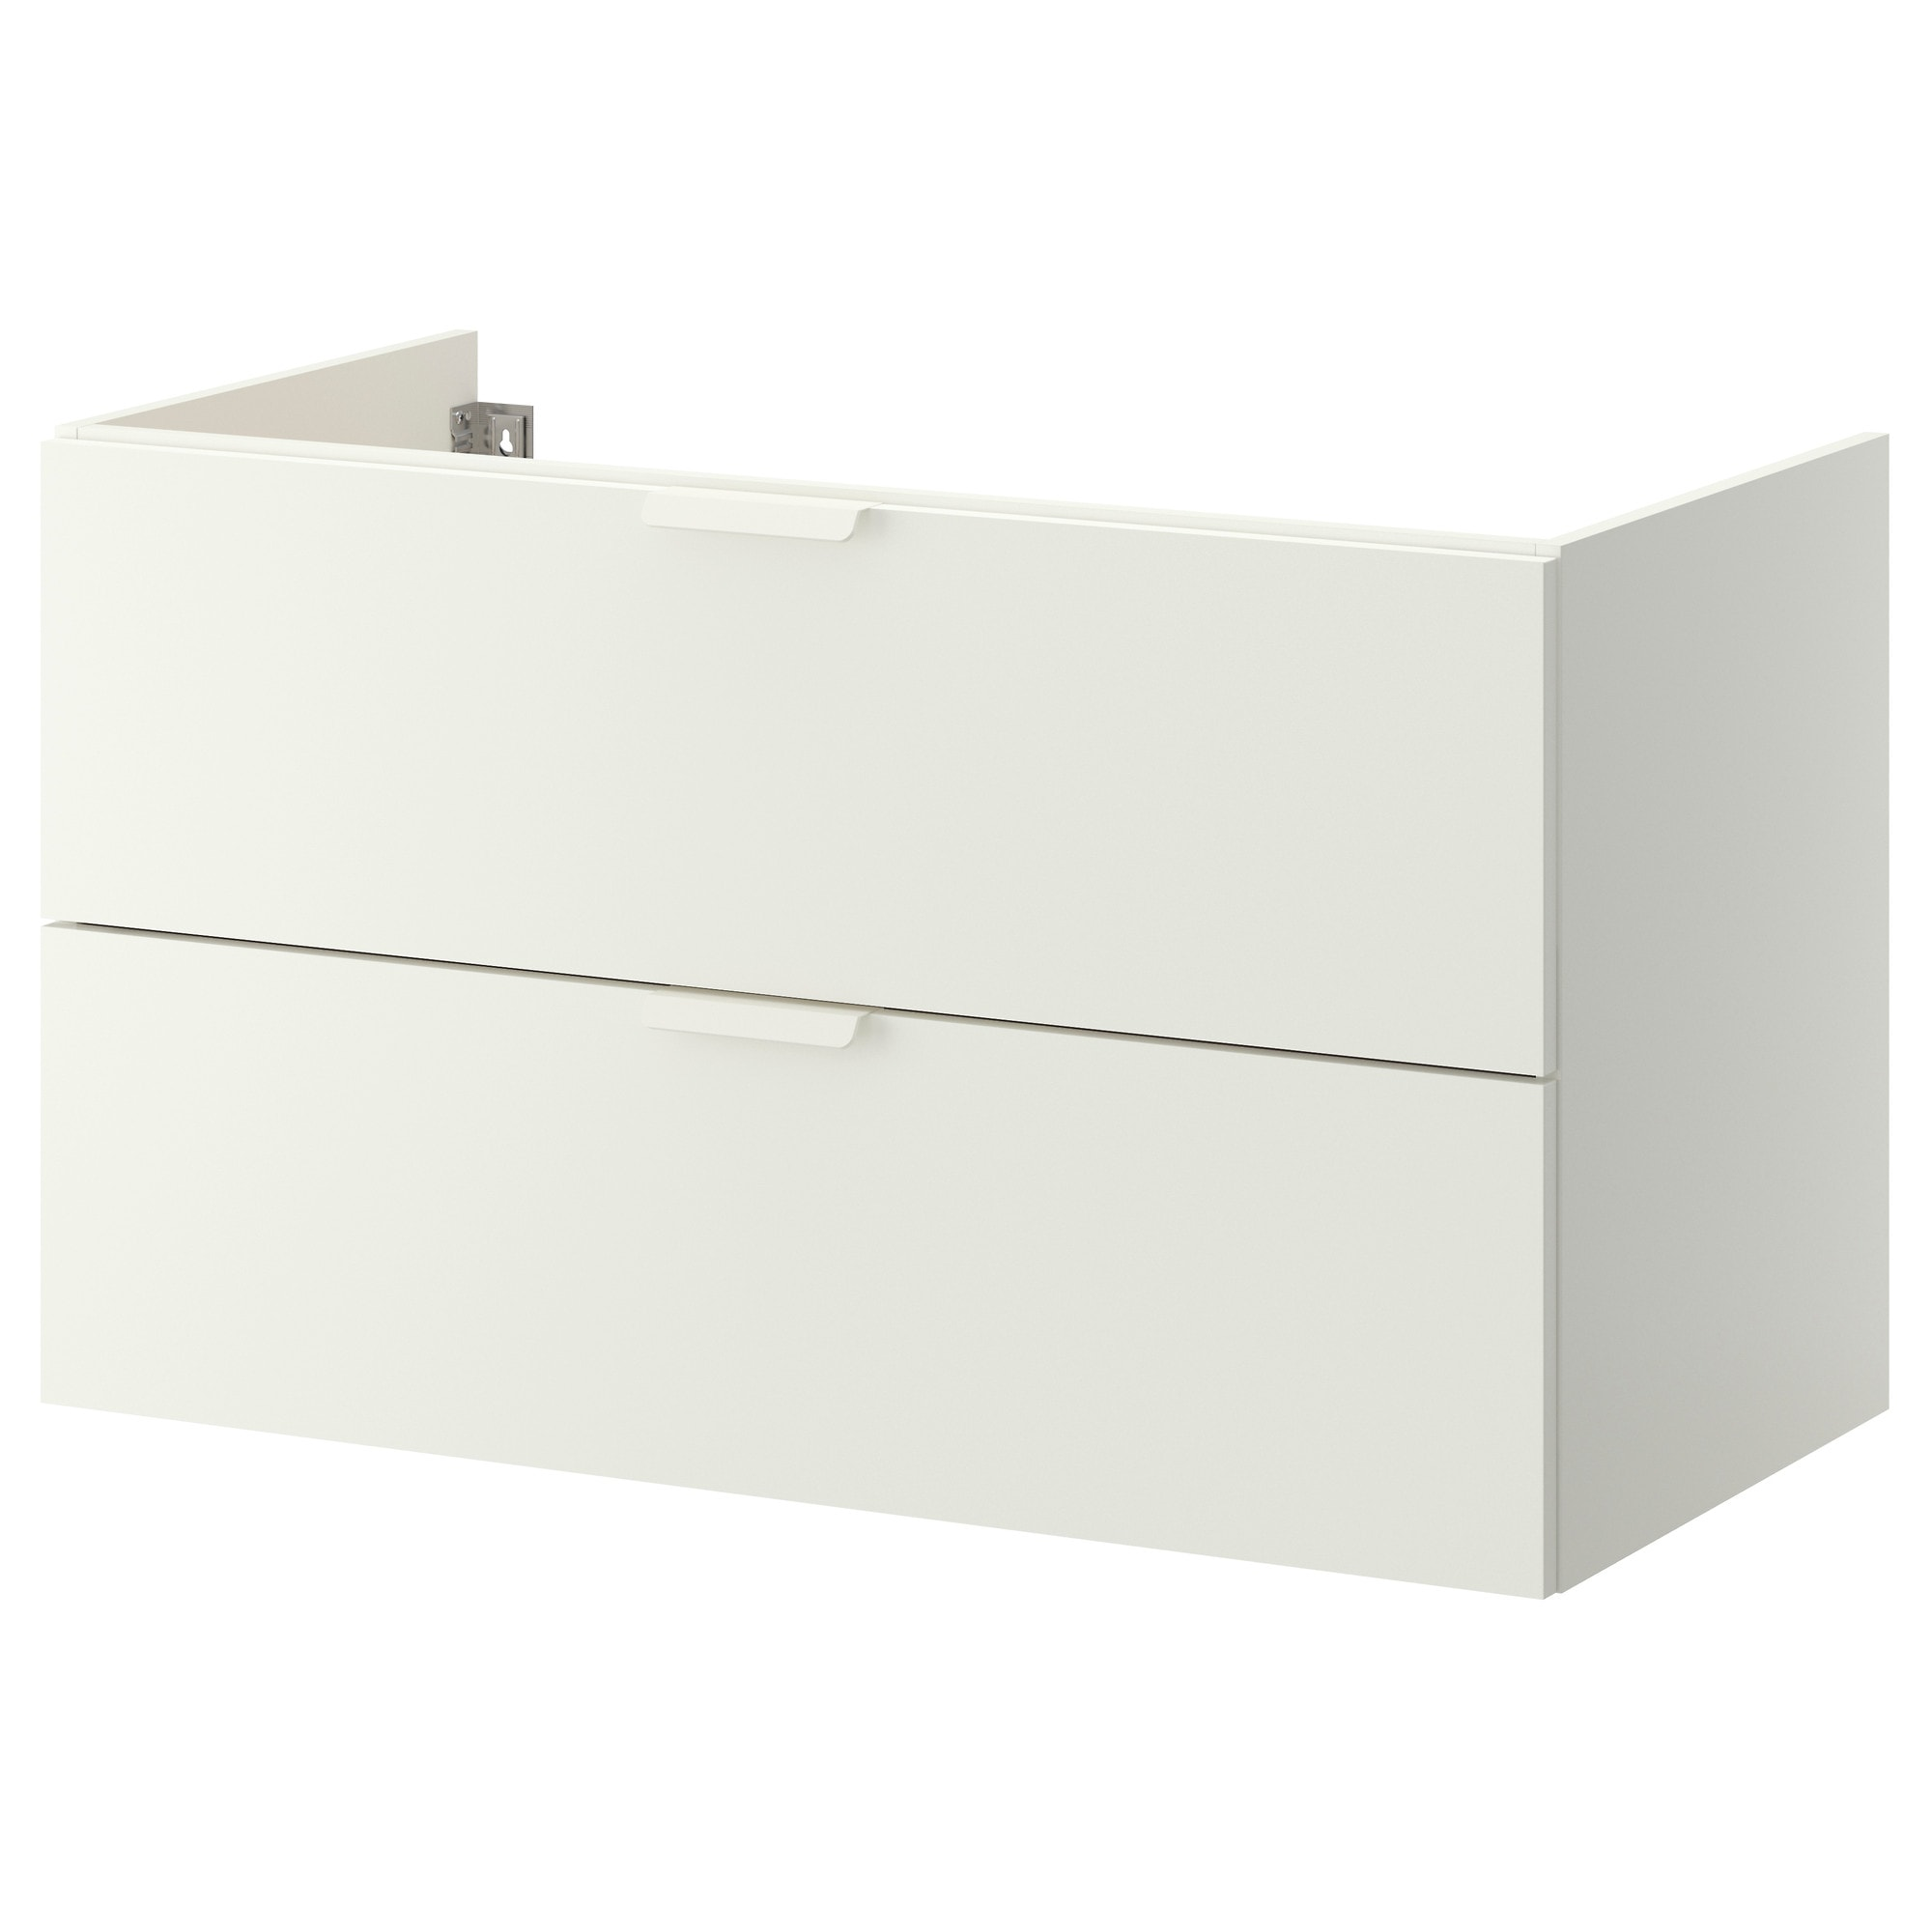 GODMORGON Sink cabinet with 2 drawers white 23 5 8x18 1 2x22 7